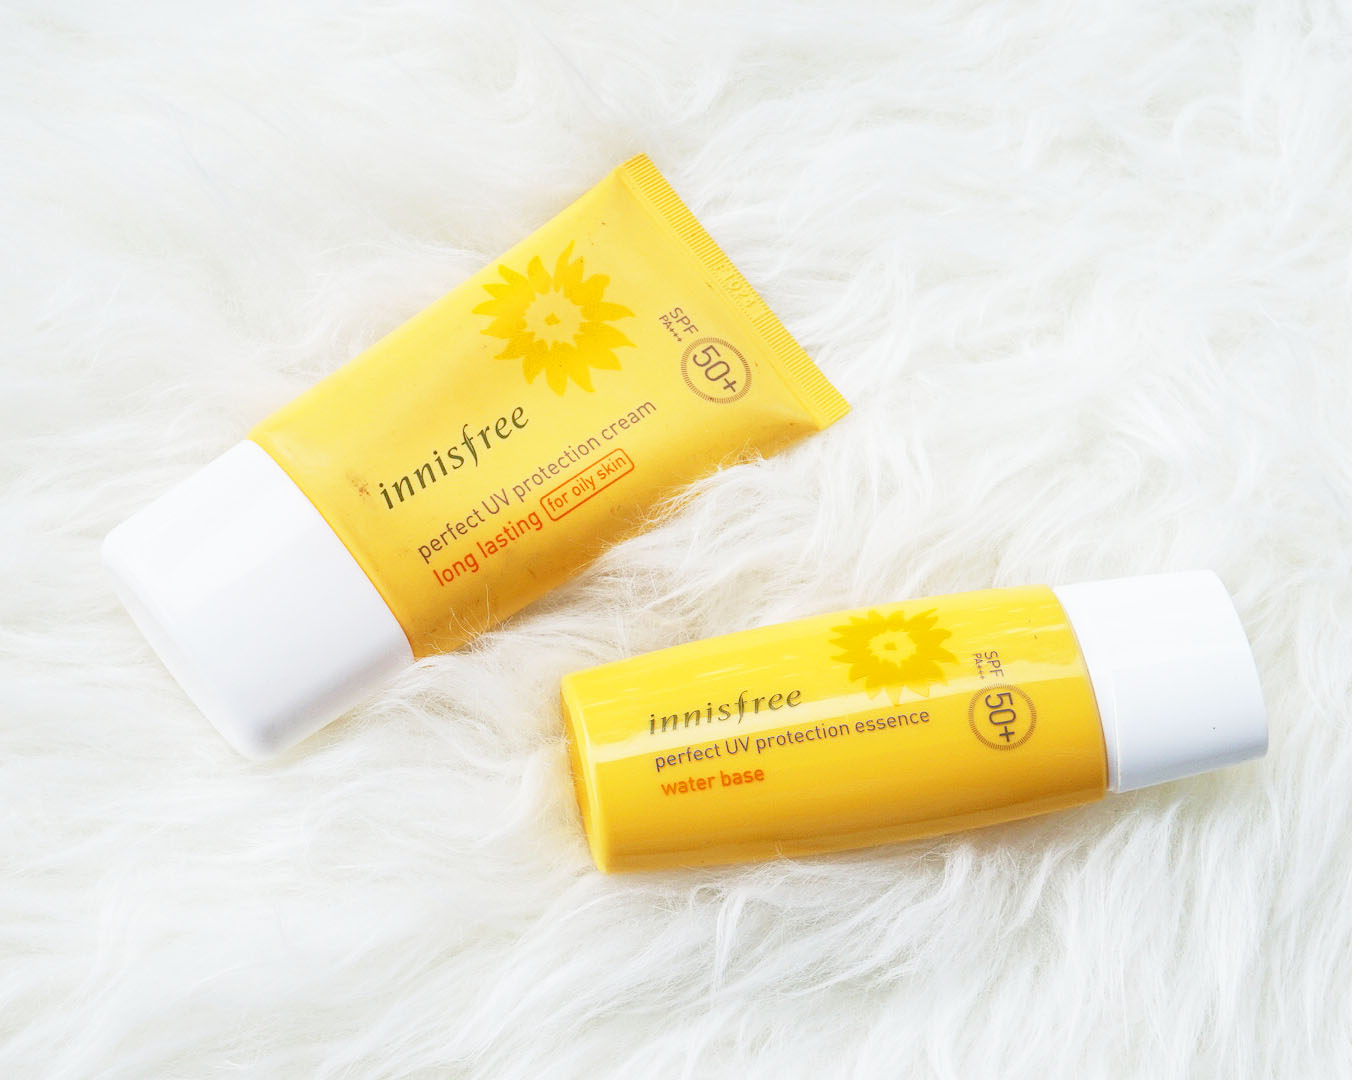 Kem chống nắng Innisfree Perfect UV Protection Min